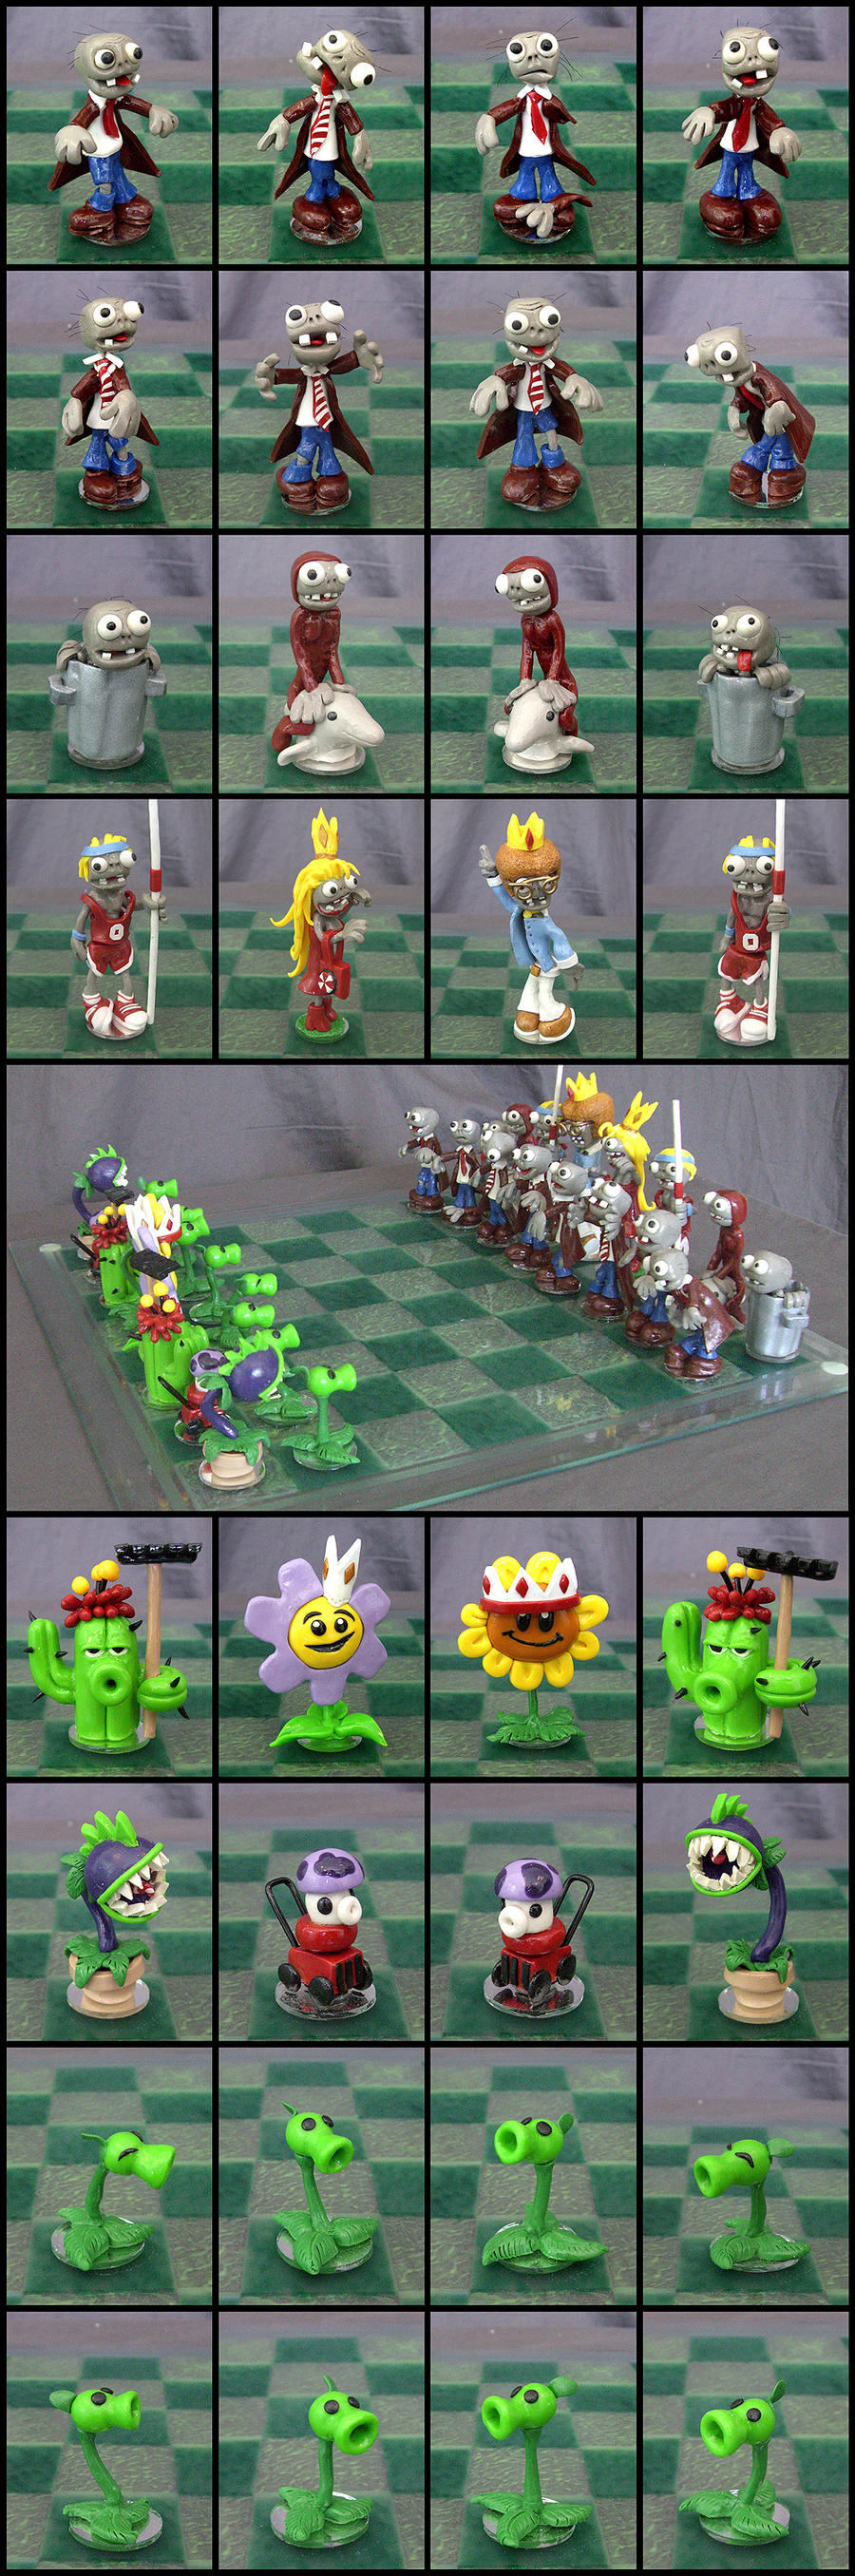 Plants Vs Zombies Hacked >> Plants Vs. Zombies Chess Set by Cyle on DeviantArt